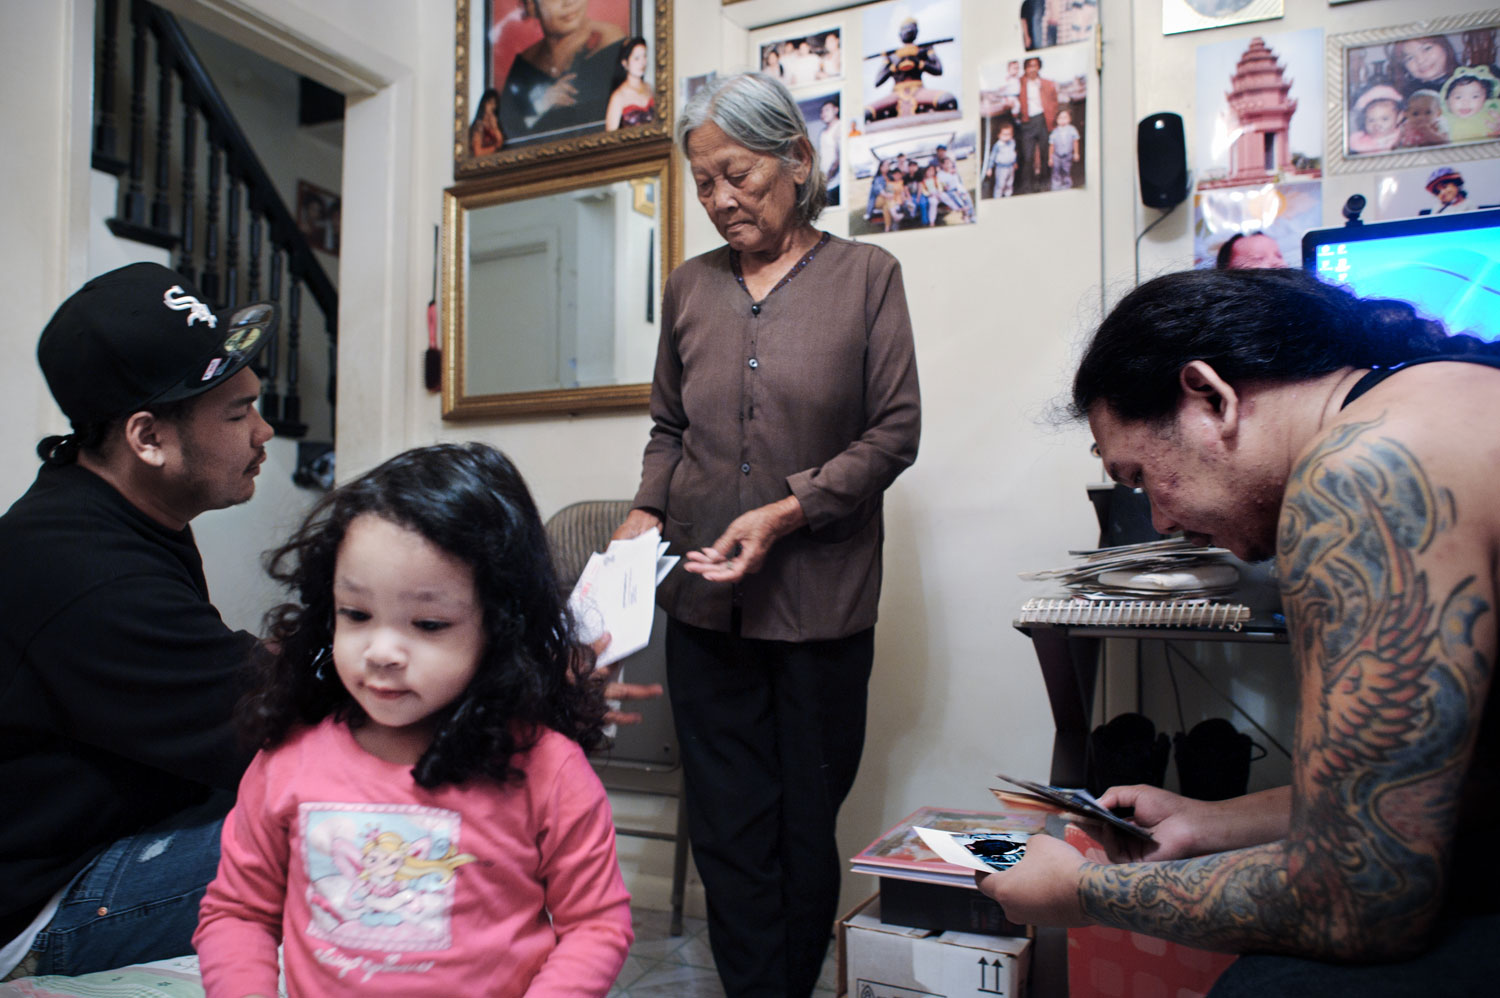 Bronx, New York City, September 2011.Three generations of the Duong family look at old family photos and documents from the refugee camps for the first time in the living room of their Bronx apartment. For many families, these documents are their only possessions from Cambodia.